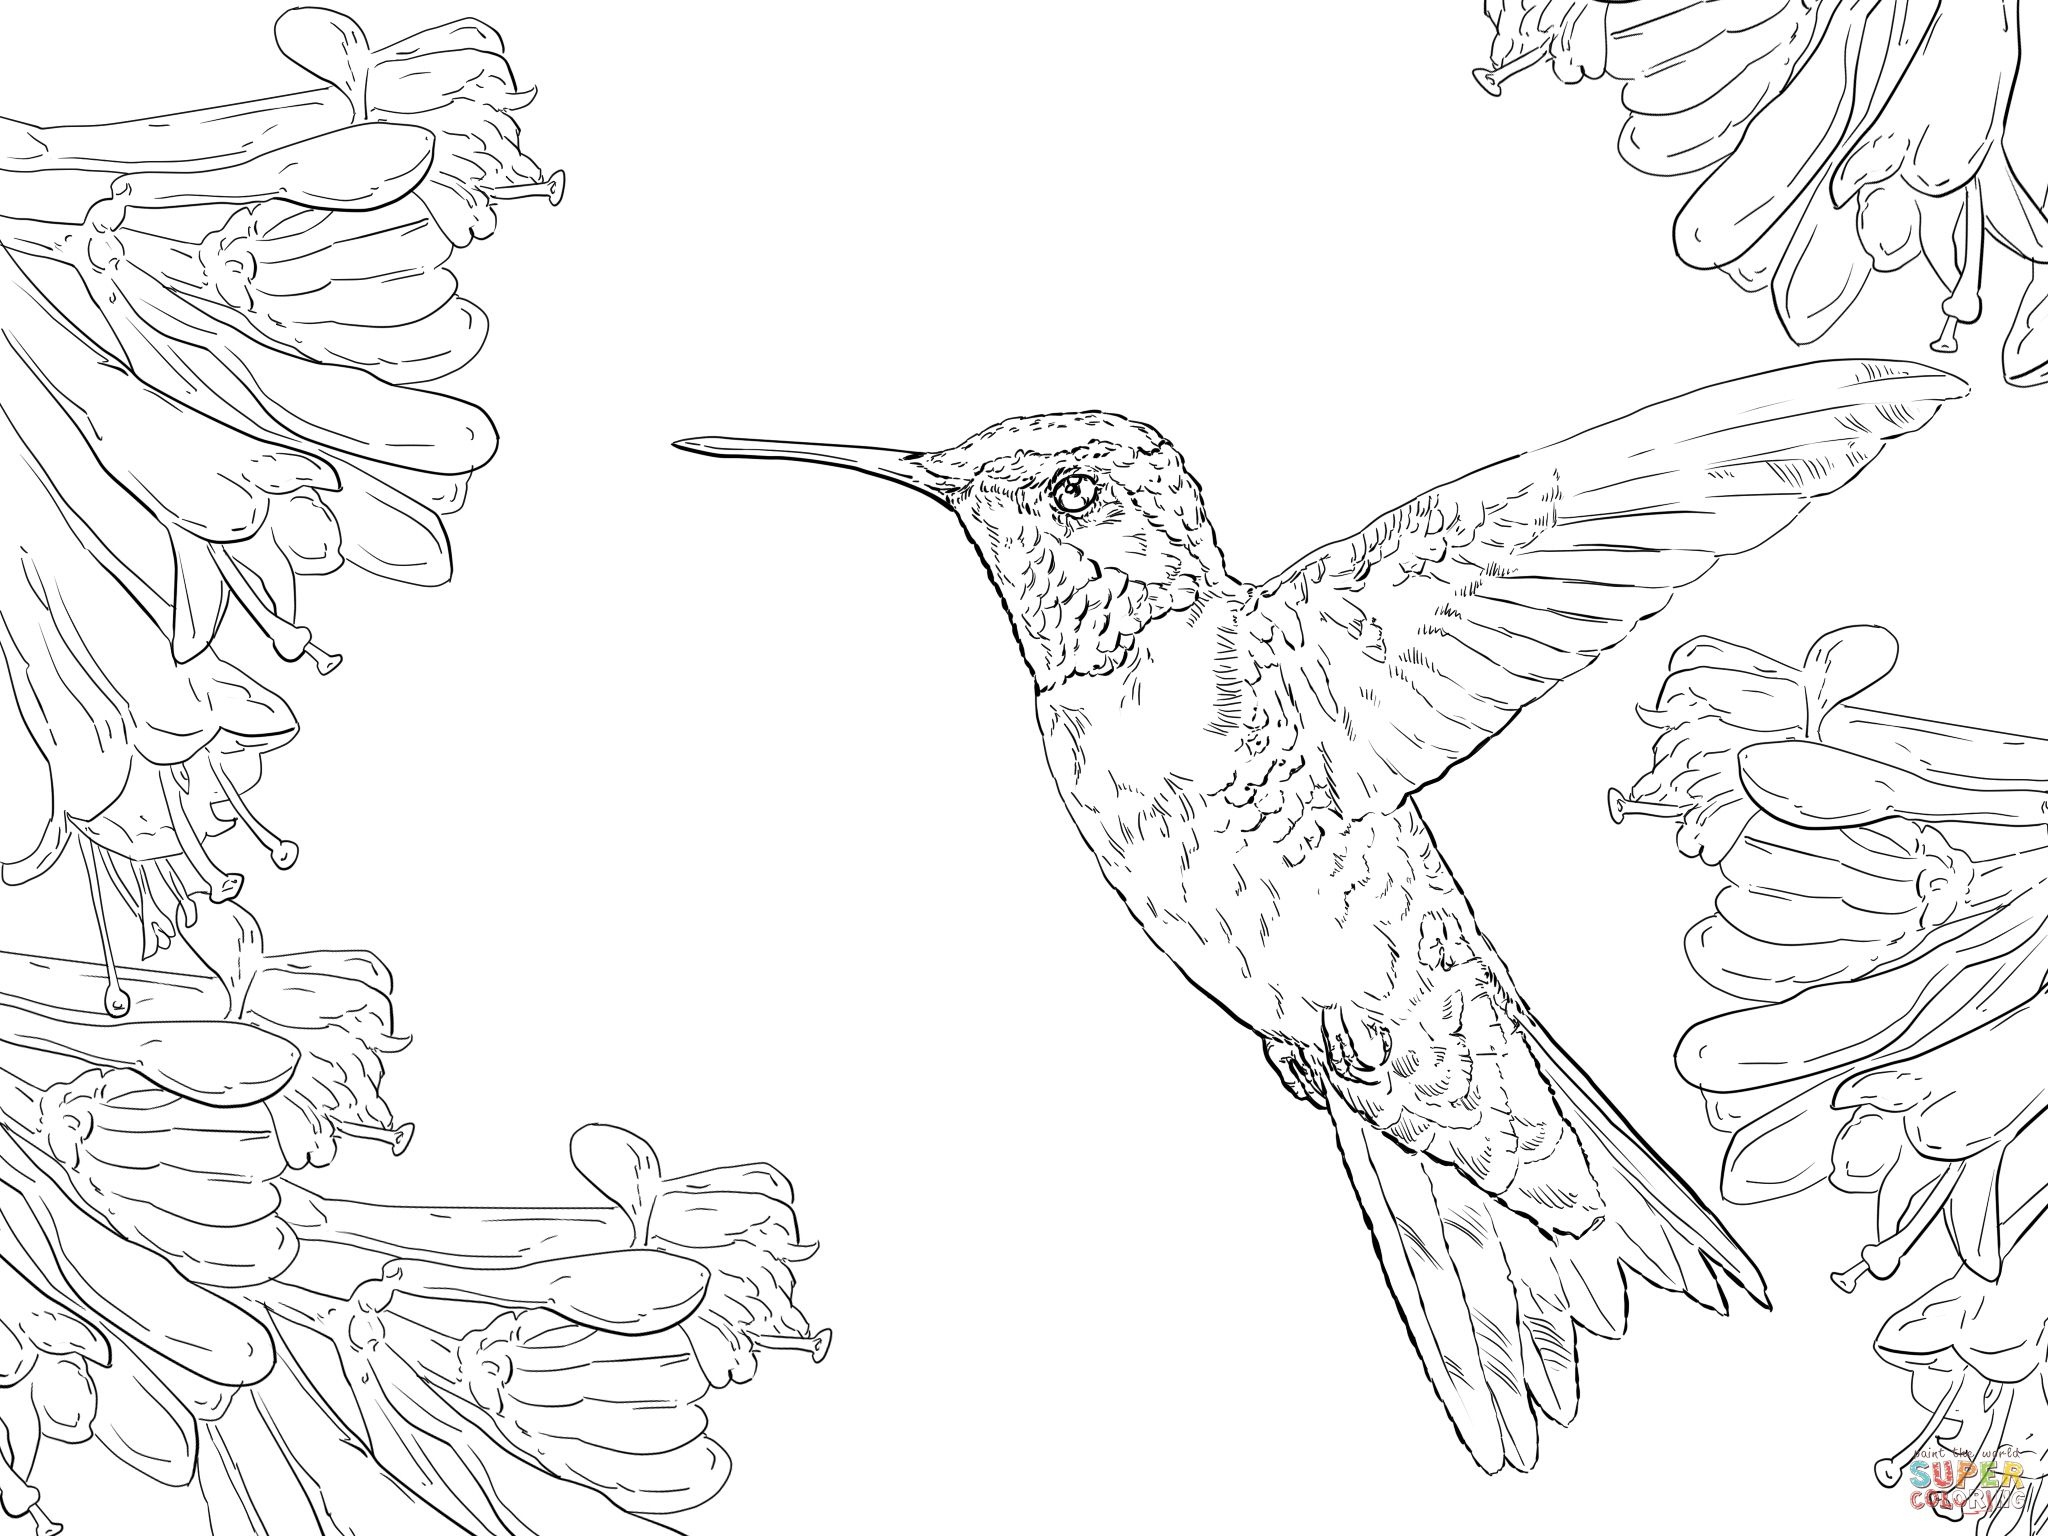 Realistic Ruby Throated Hummingbird Coloring Page | Supercoloring - Free Printable Pictures Of Hummingbirds